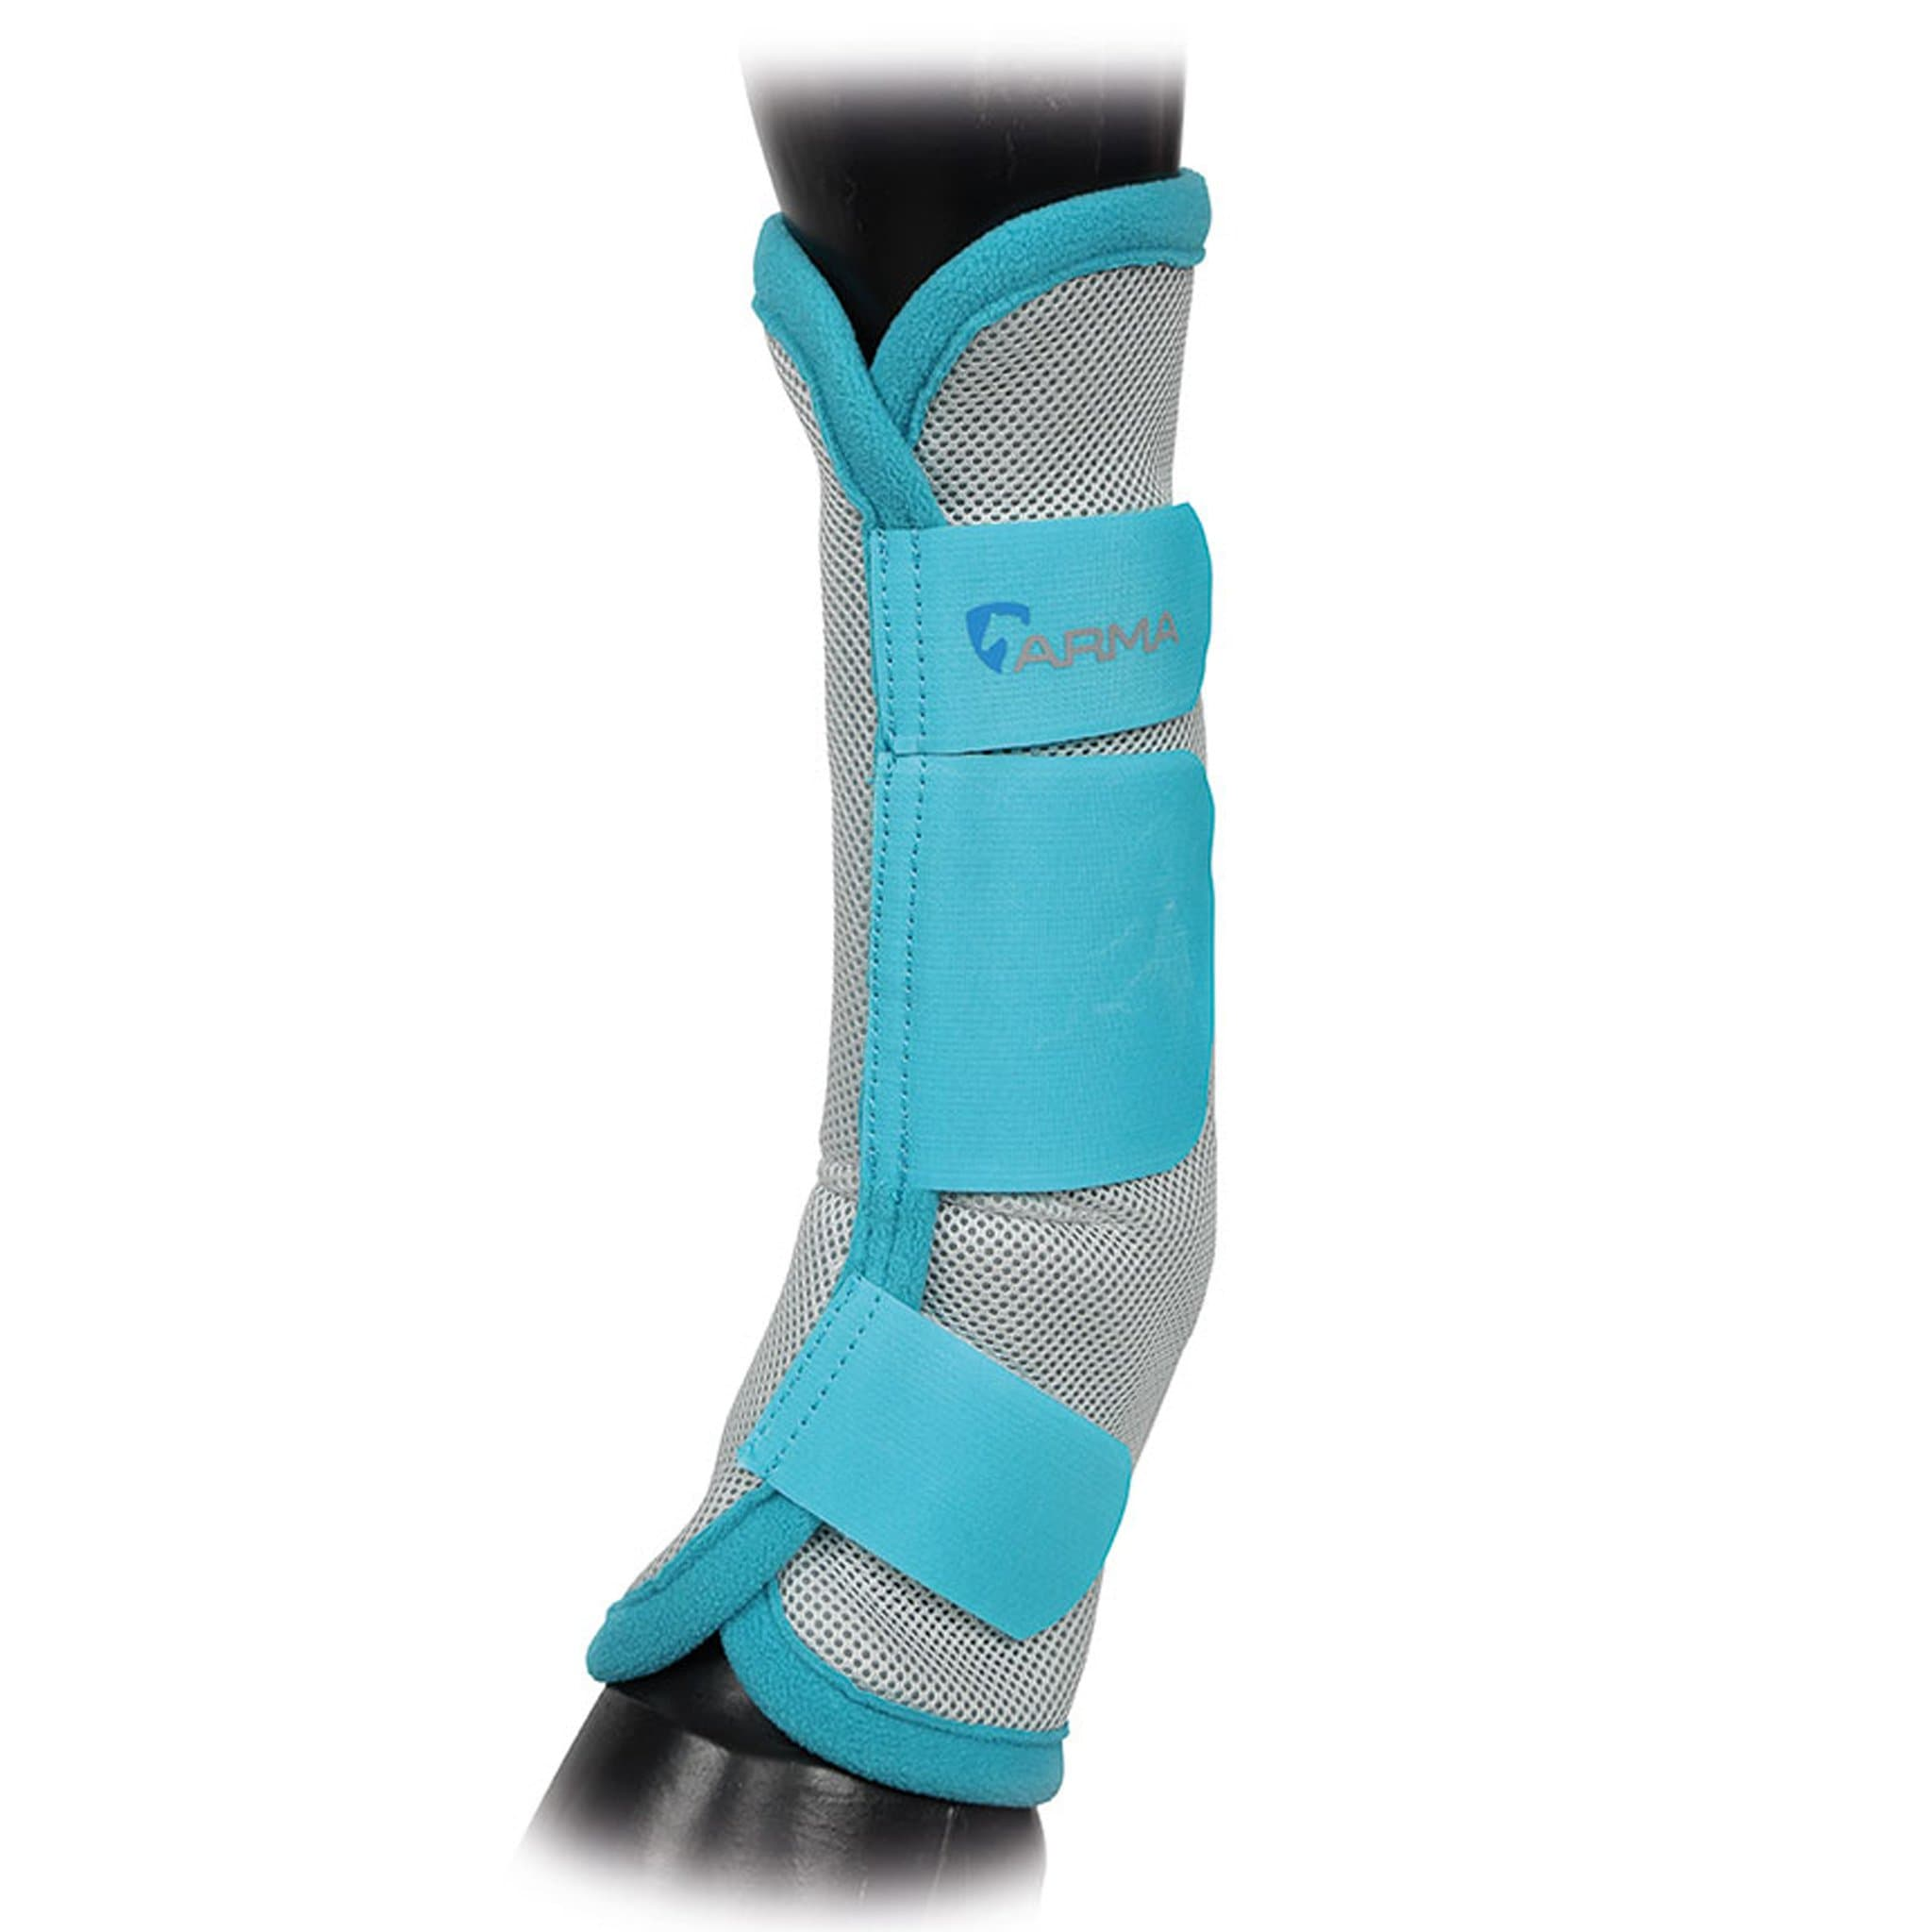 Shires Arma Fly Turnout Socks Teal 1857